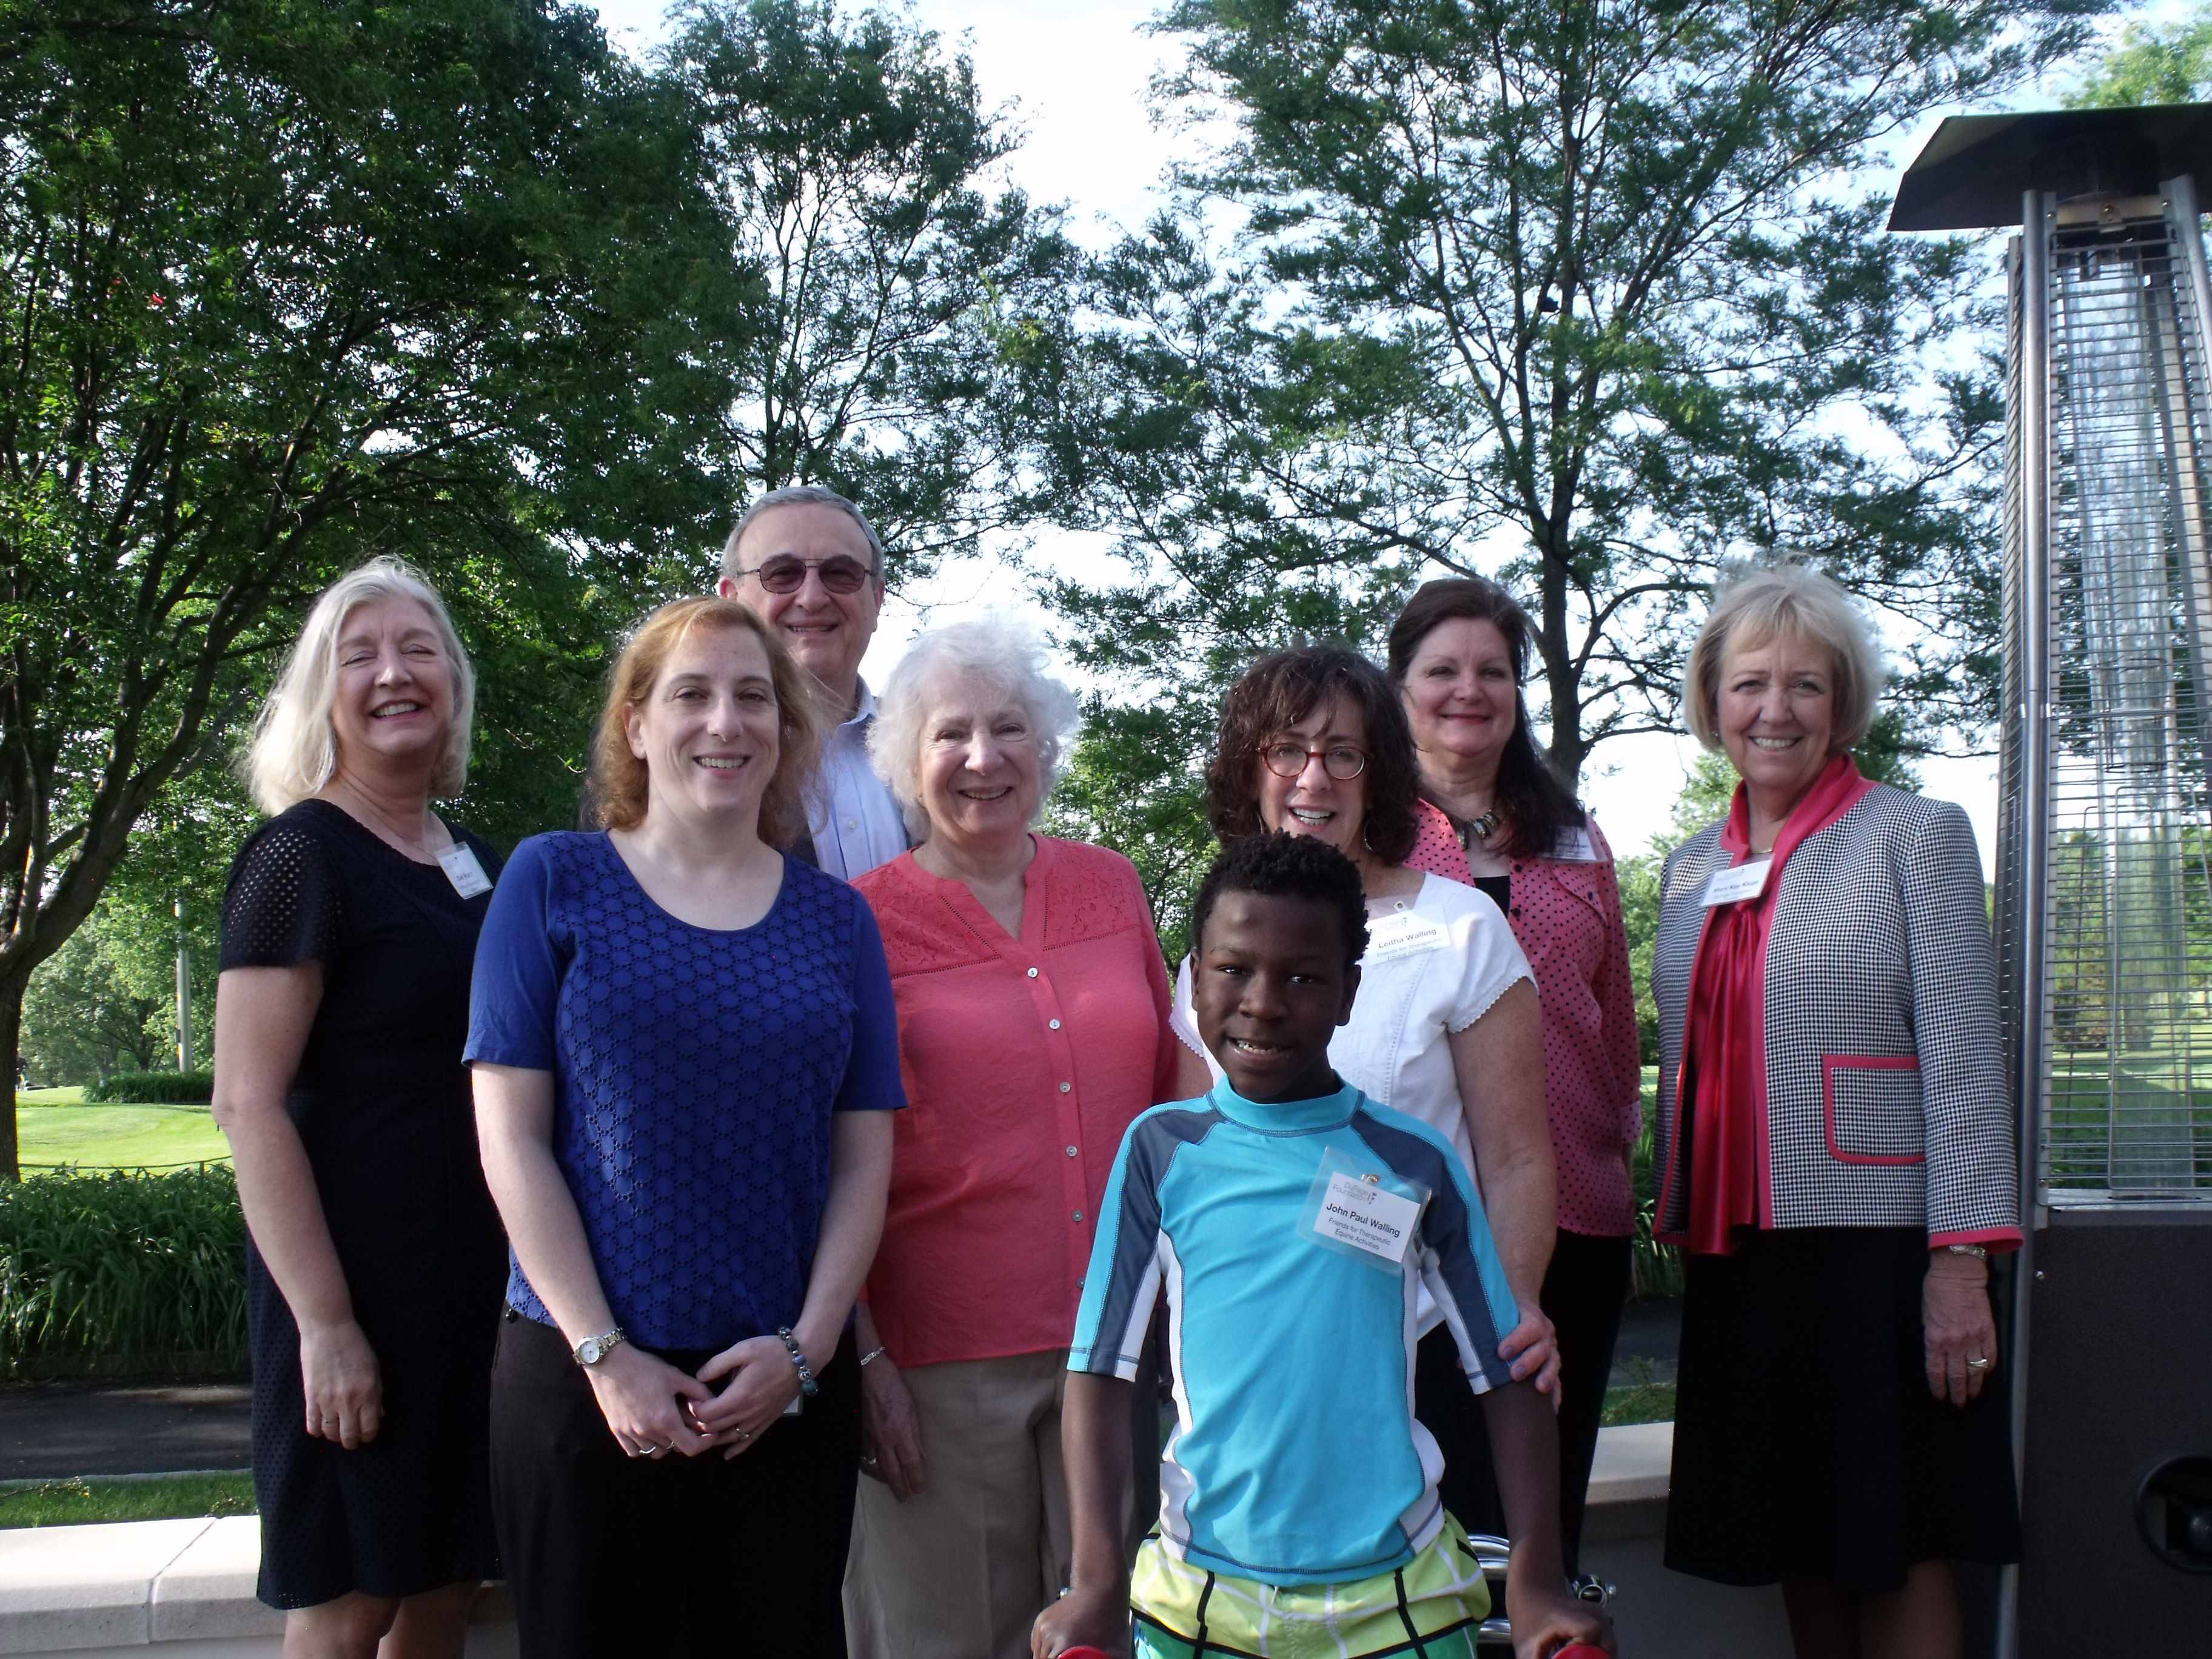 Foundation Sets a New Record and Awards More than $800,000 at Spring Grant Breakfast